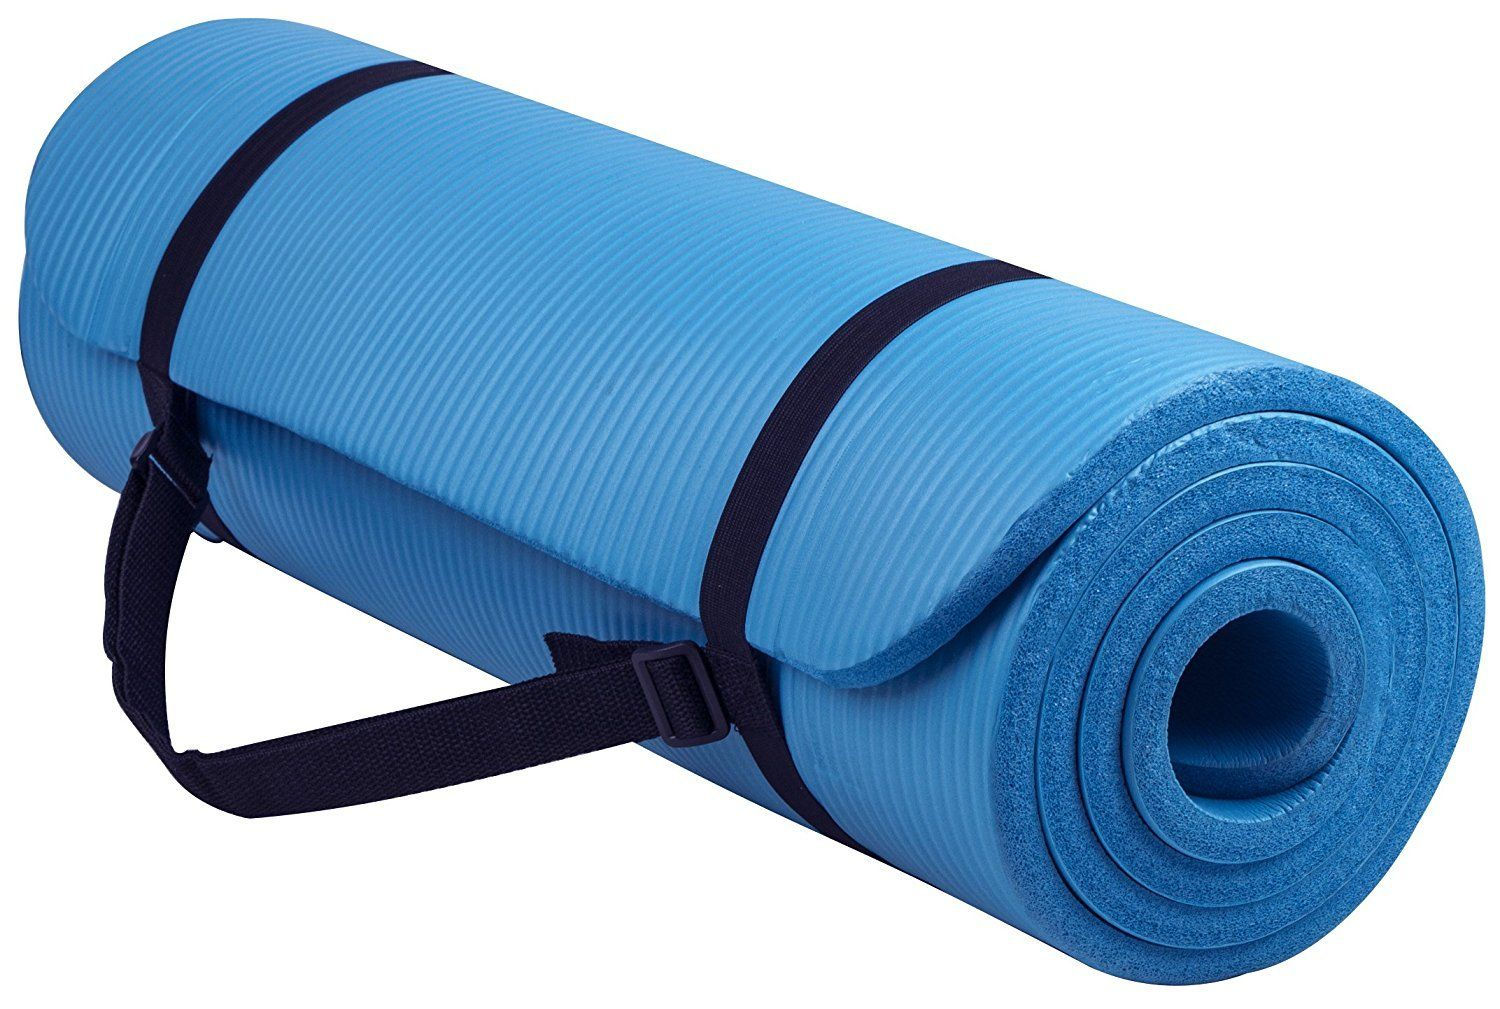 Yoga Mat 1 2 Inch Extra Thick High Density Anti Tear All Purpose Yoga Mat Exercise With Carrying Strap Blue 72 Long Yoga Mats Best Mat Exercises Yoga Mat